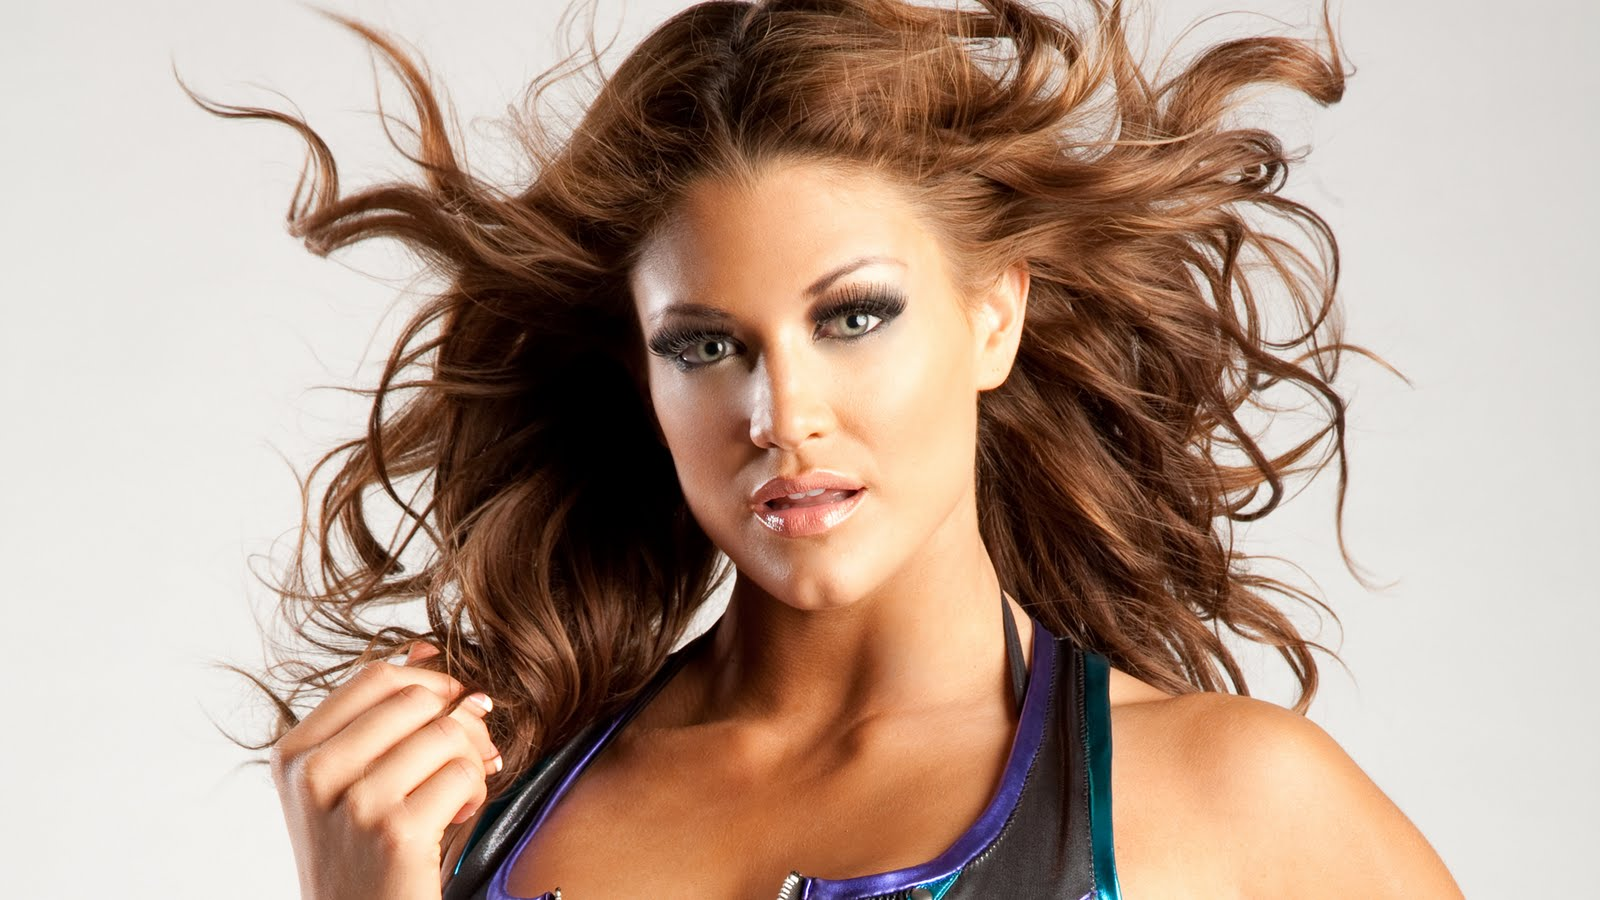 Eve Torres wwe divas 20701823 1920 1080 Elaborate Free Download Wwe Diva Eves Nude Photos Cross Design. 1600x900px